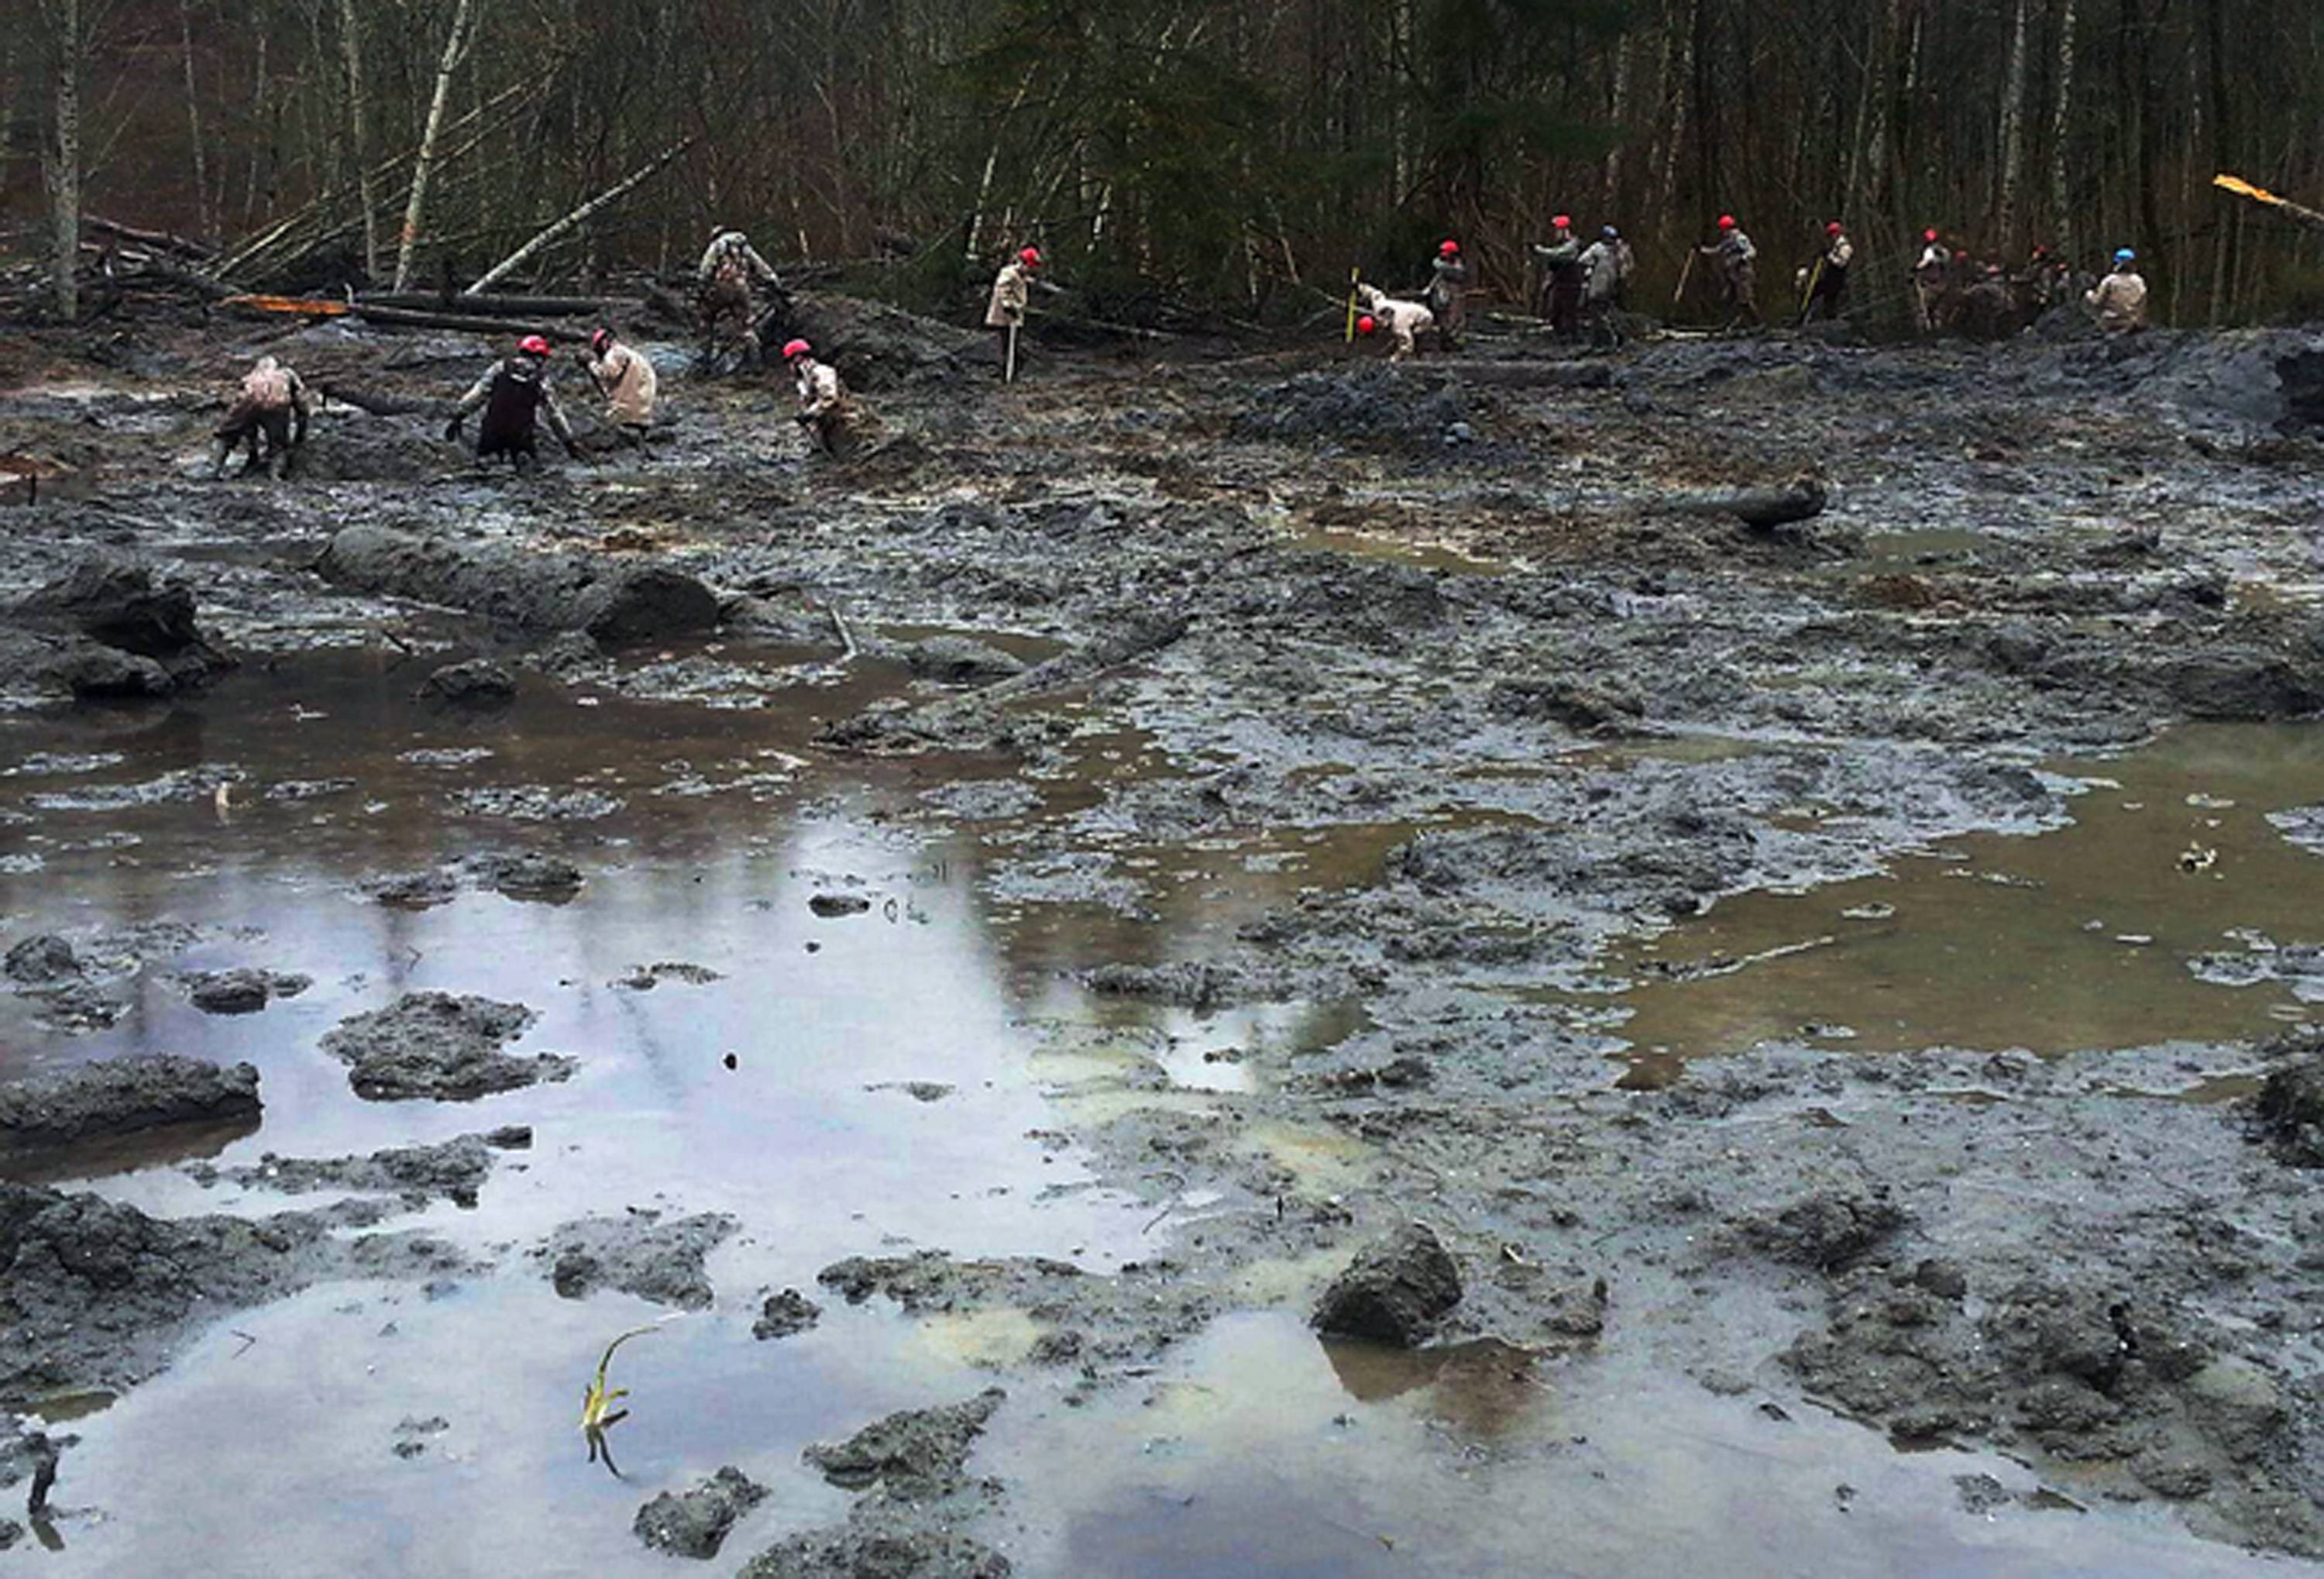 Washington Air National Guardsmen methodically make their way through the mud and wreckage Friday left behind by last Saturday's mudslide near Oso, Wash.